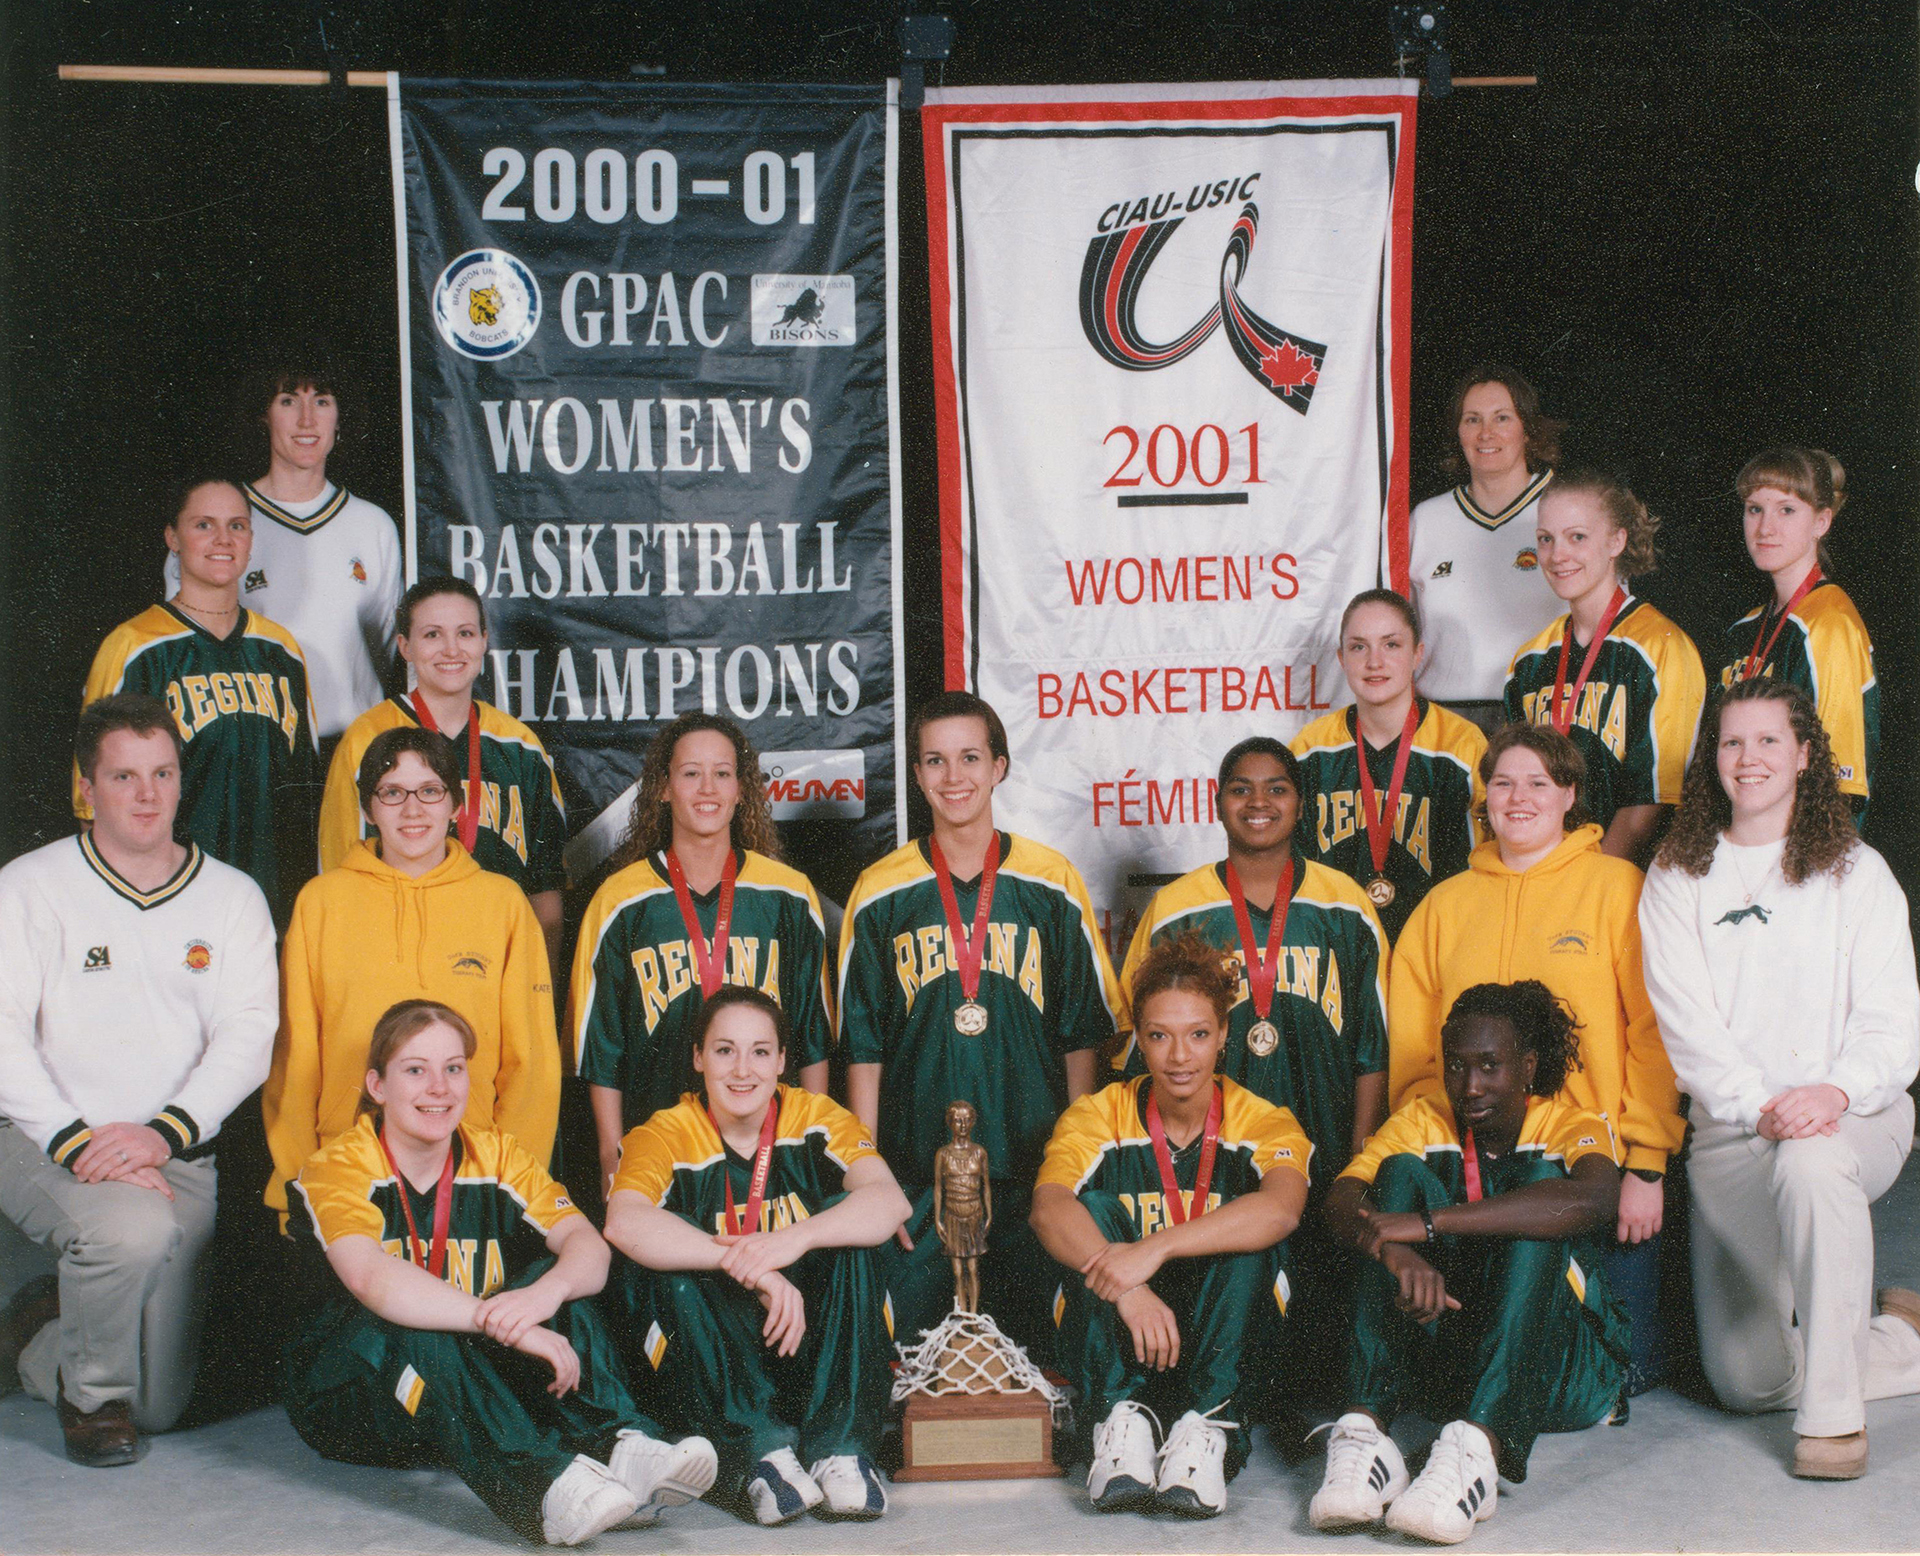 The 2000-01 CIS championship women's CIS team.